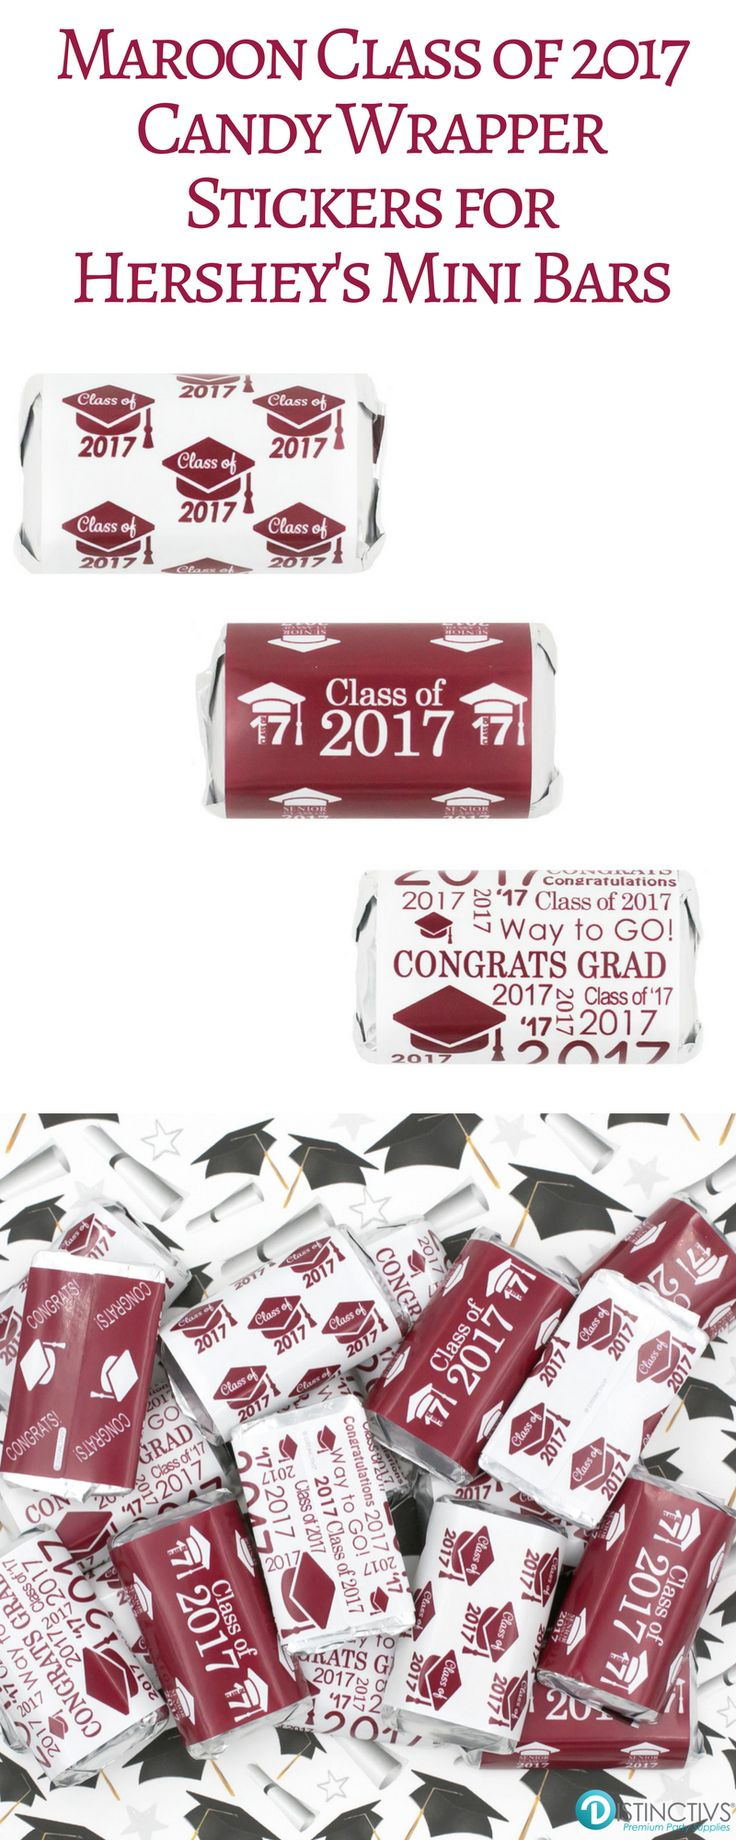 Add these Maroon Class of 2017 Graduation Party Favor Stickers to Hershey's miniature candy bars for a simple and easy graduation party favor, candy bar or dessert table decoration